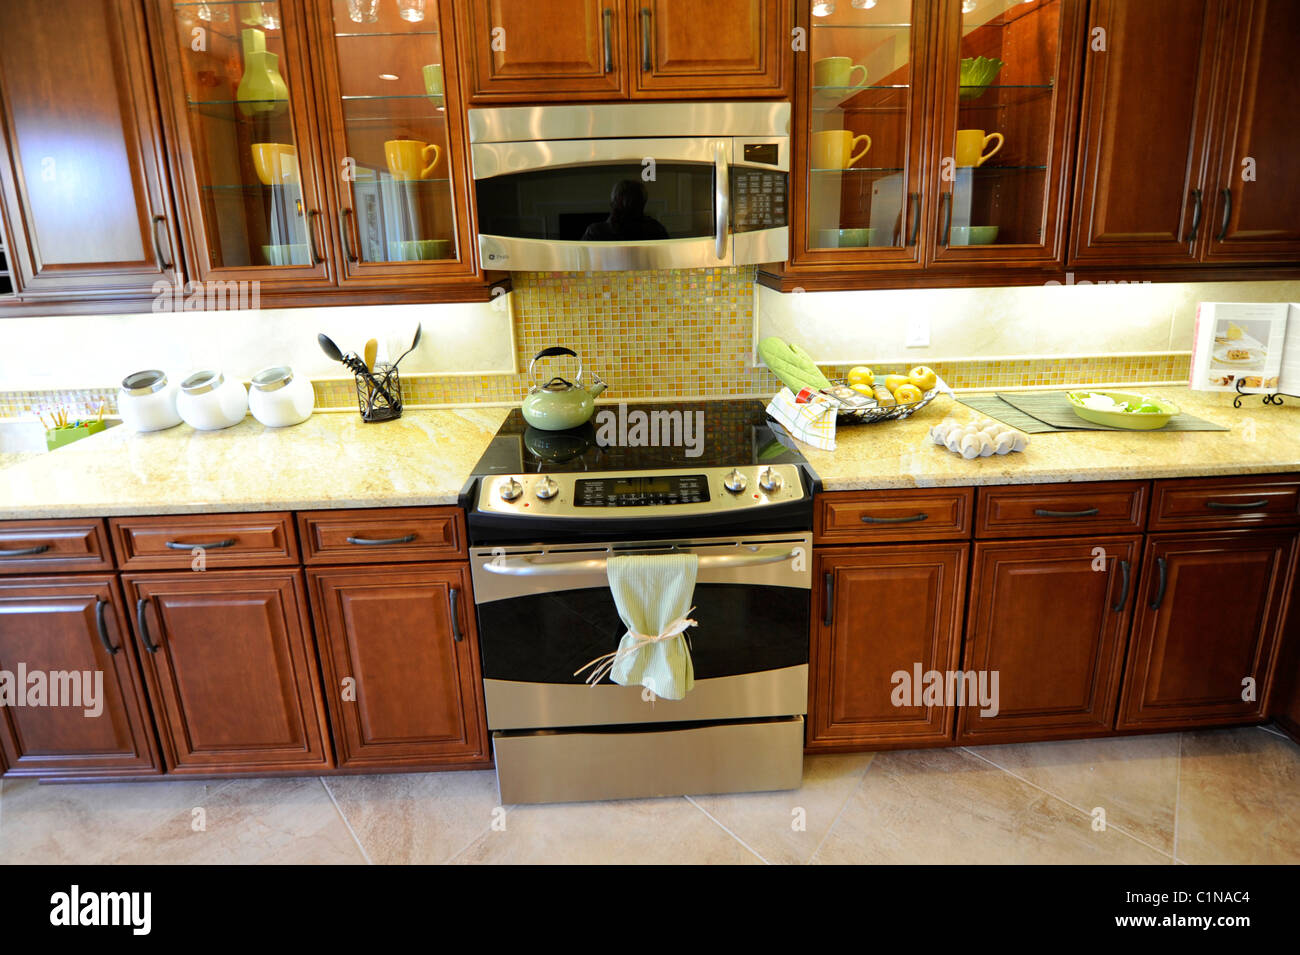 Interior spacious modern dining kitchen room of an upscale new home construction Tampa Florida - Stock Image